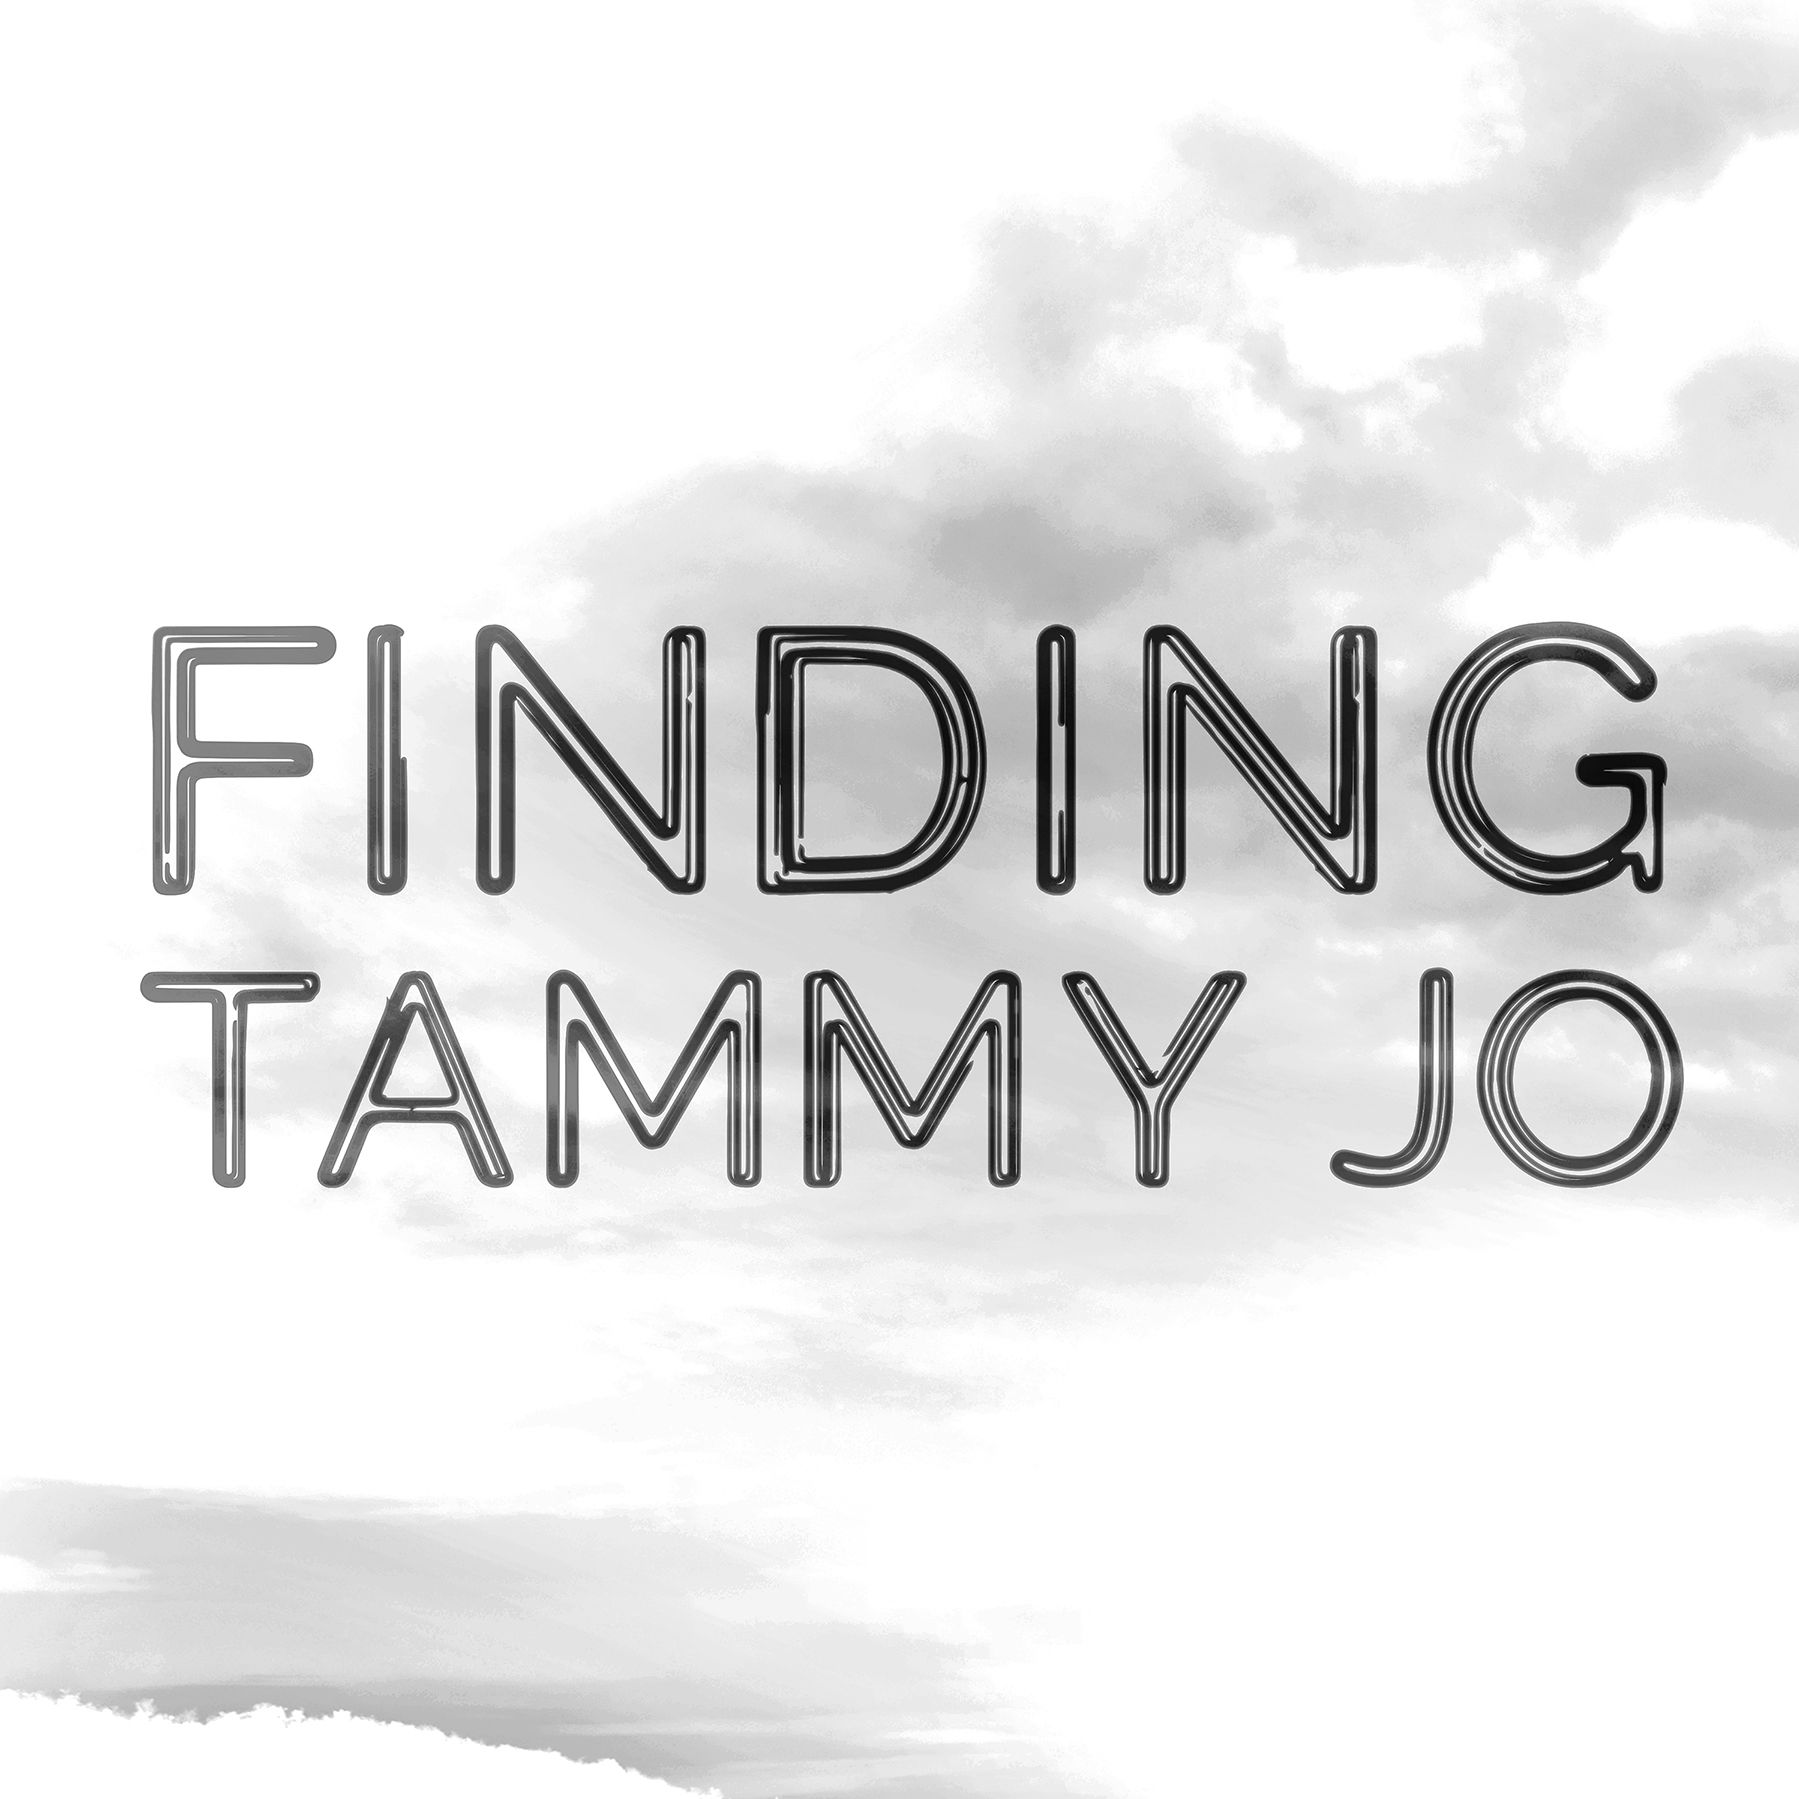 finding tammy jo listen via stitcher radio on demand